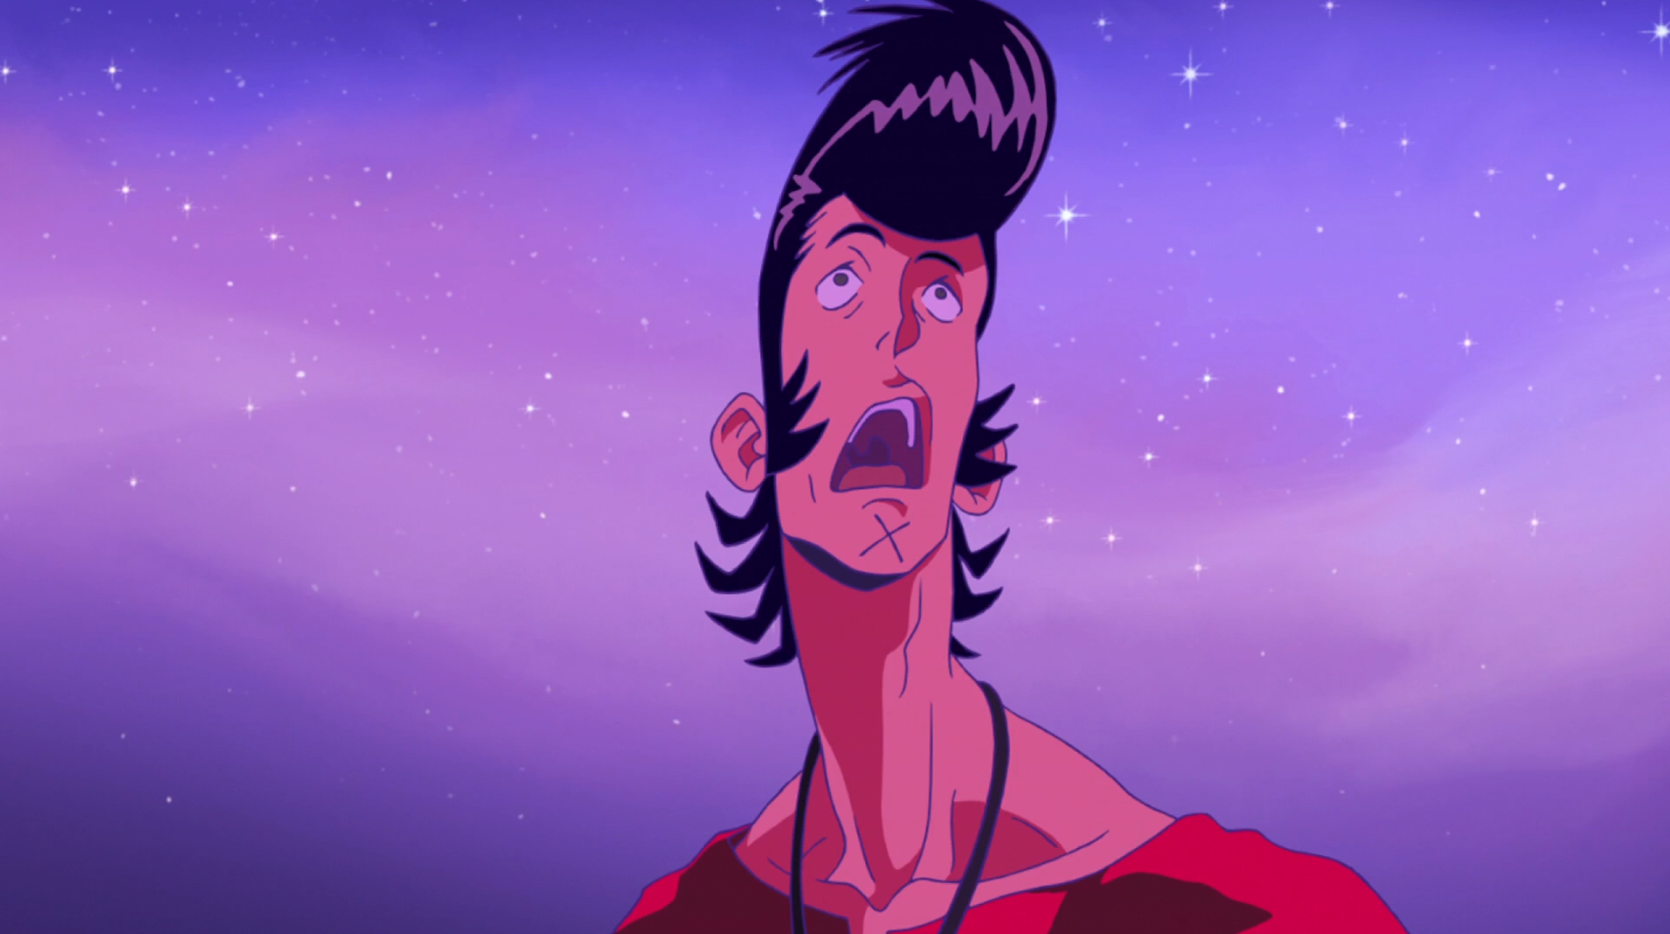 https://otakuorbit.files.wordpress.com/2014/03/space-dandy-ep-9-2.png